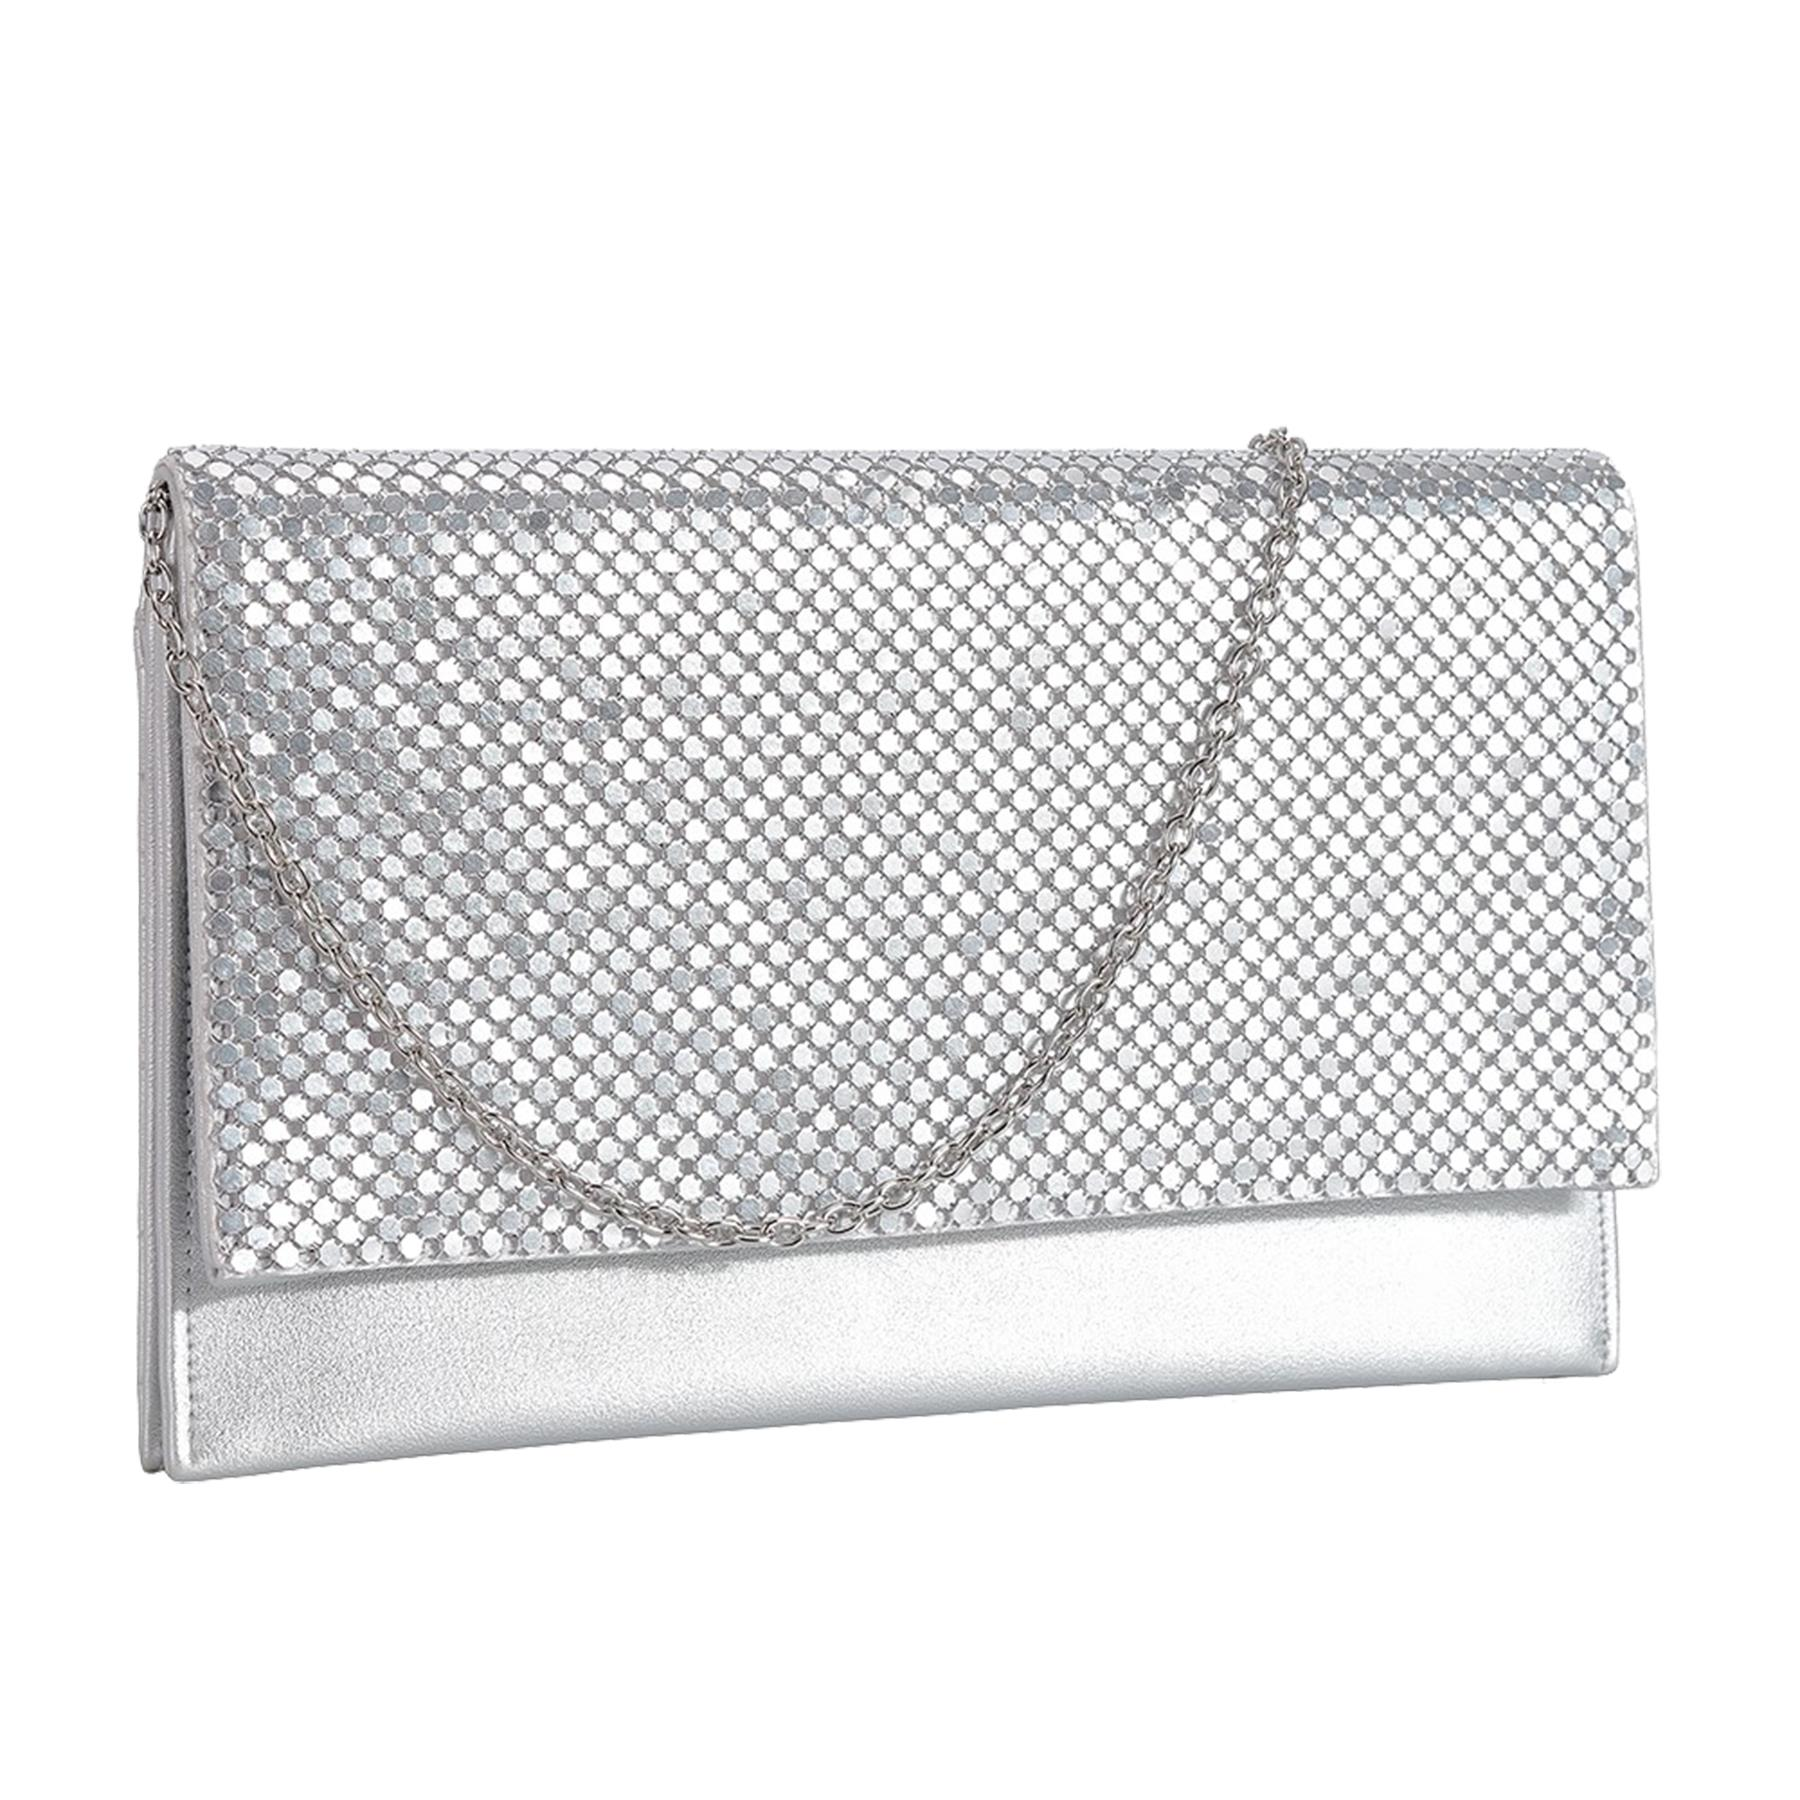 New-Ladies-Chainmail-Faux-Leather-Chain-Strap-Wedding-Clutch-Bag-Pouch thumbnail 9